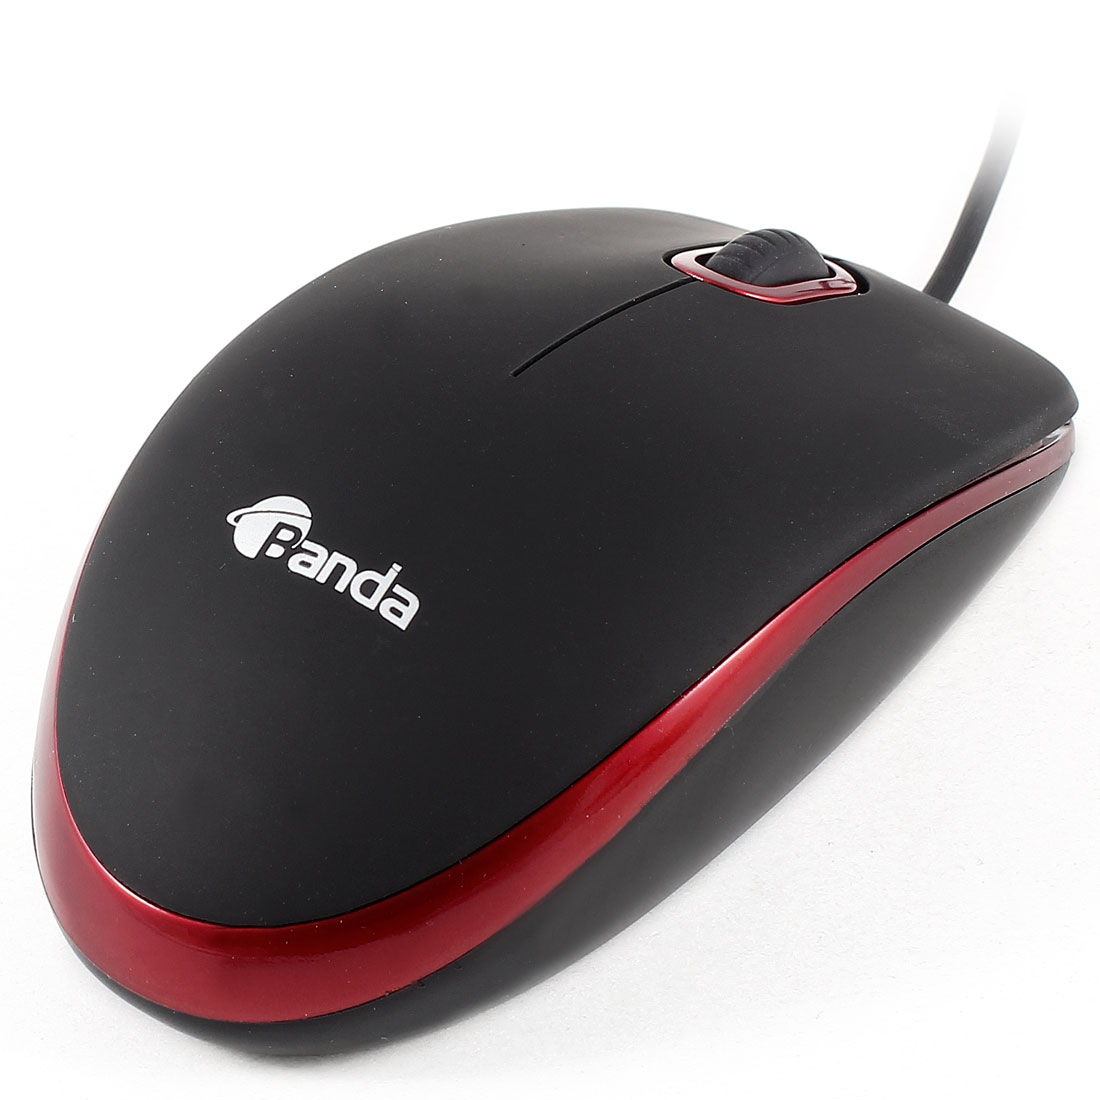 Red-LED-Light-1200DPI-USB-Plug-Wired-Optical-Game-Mouse-Black-for-Desktop-Laptop